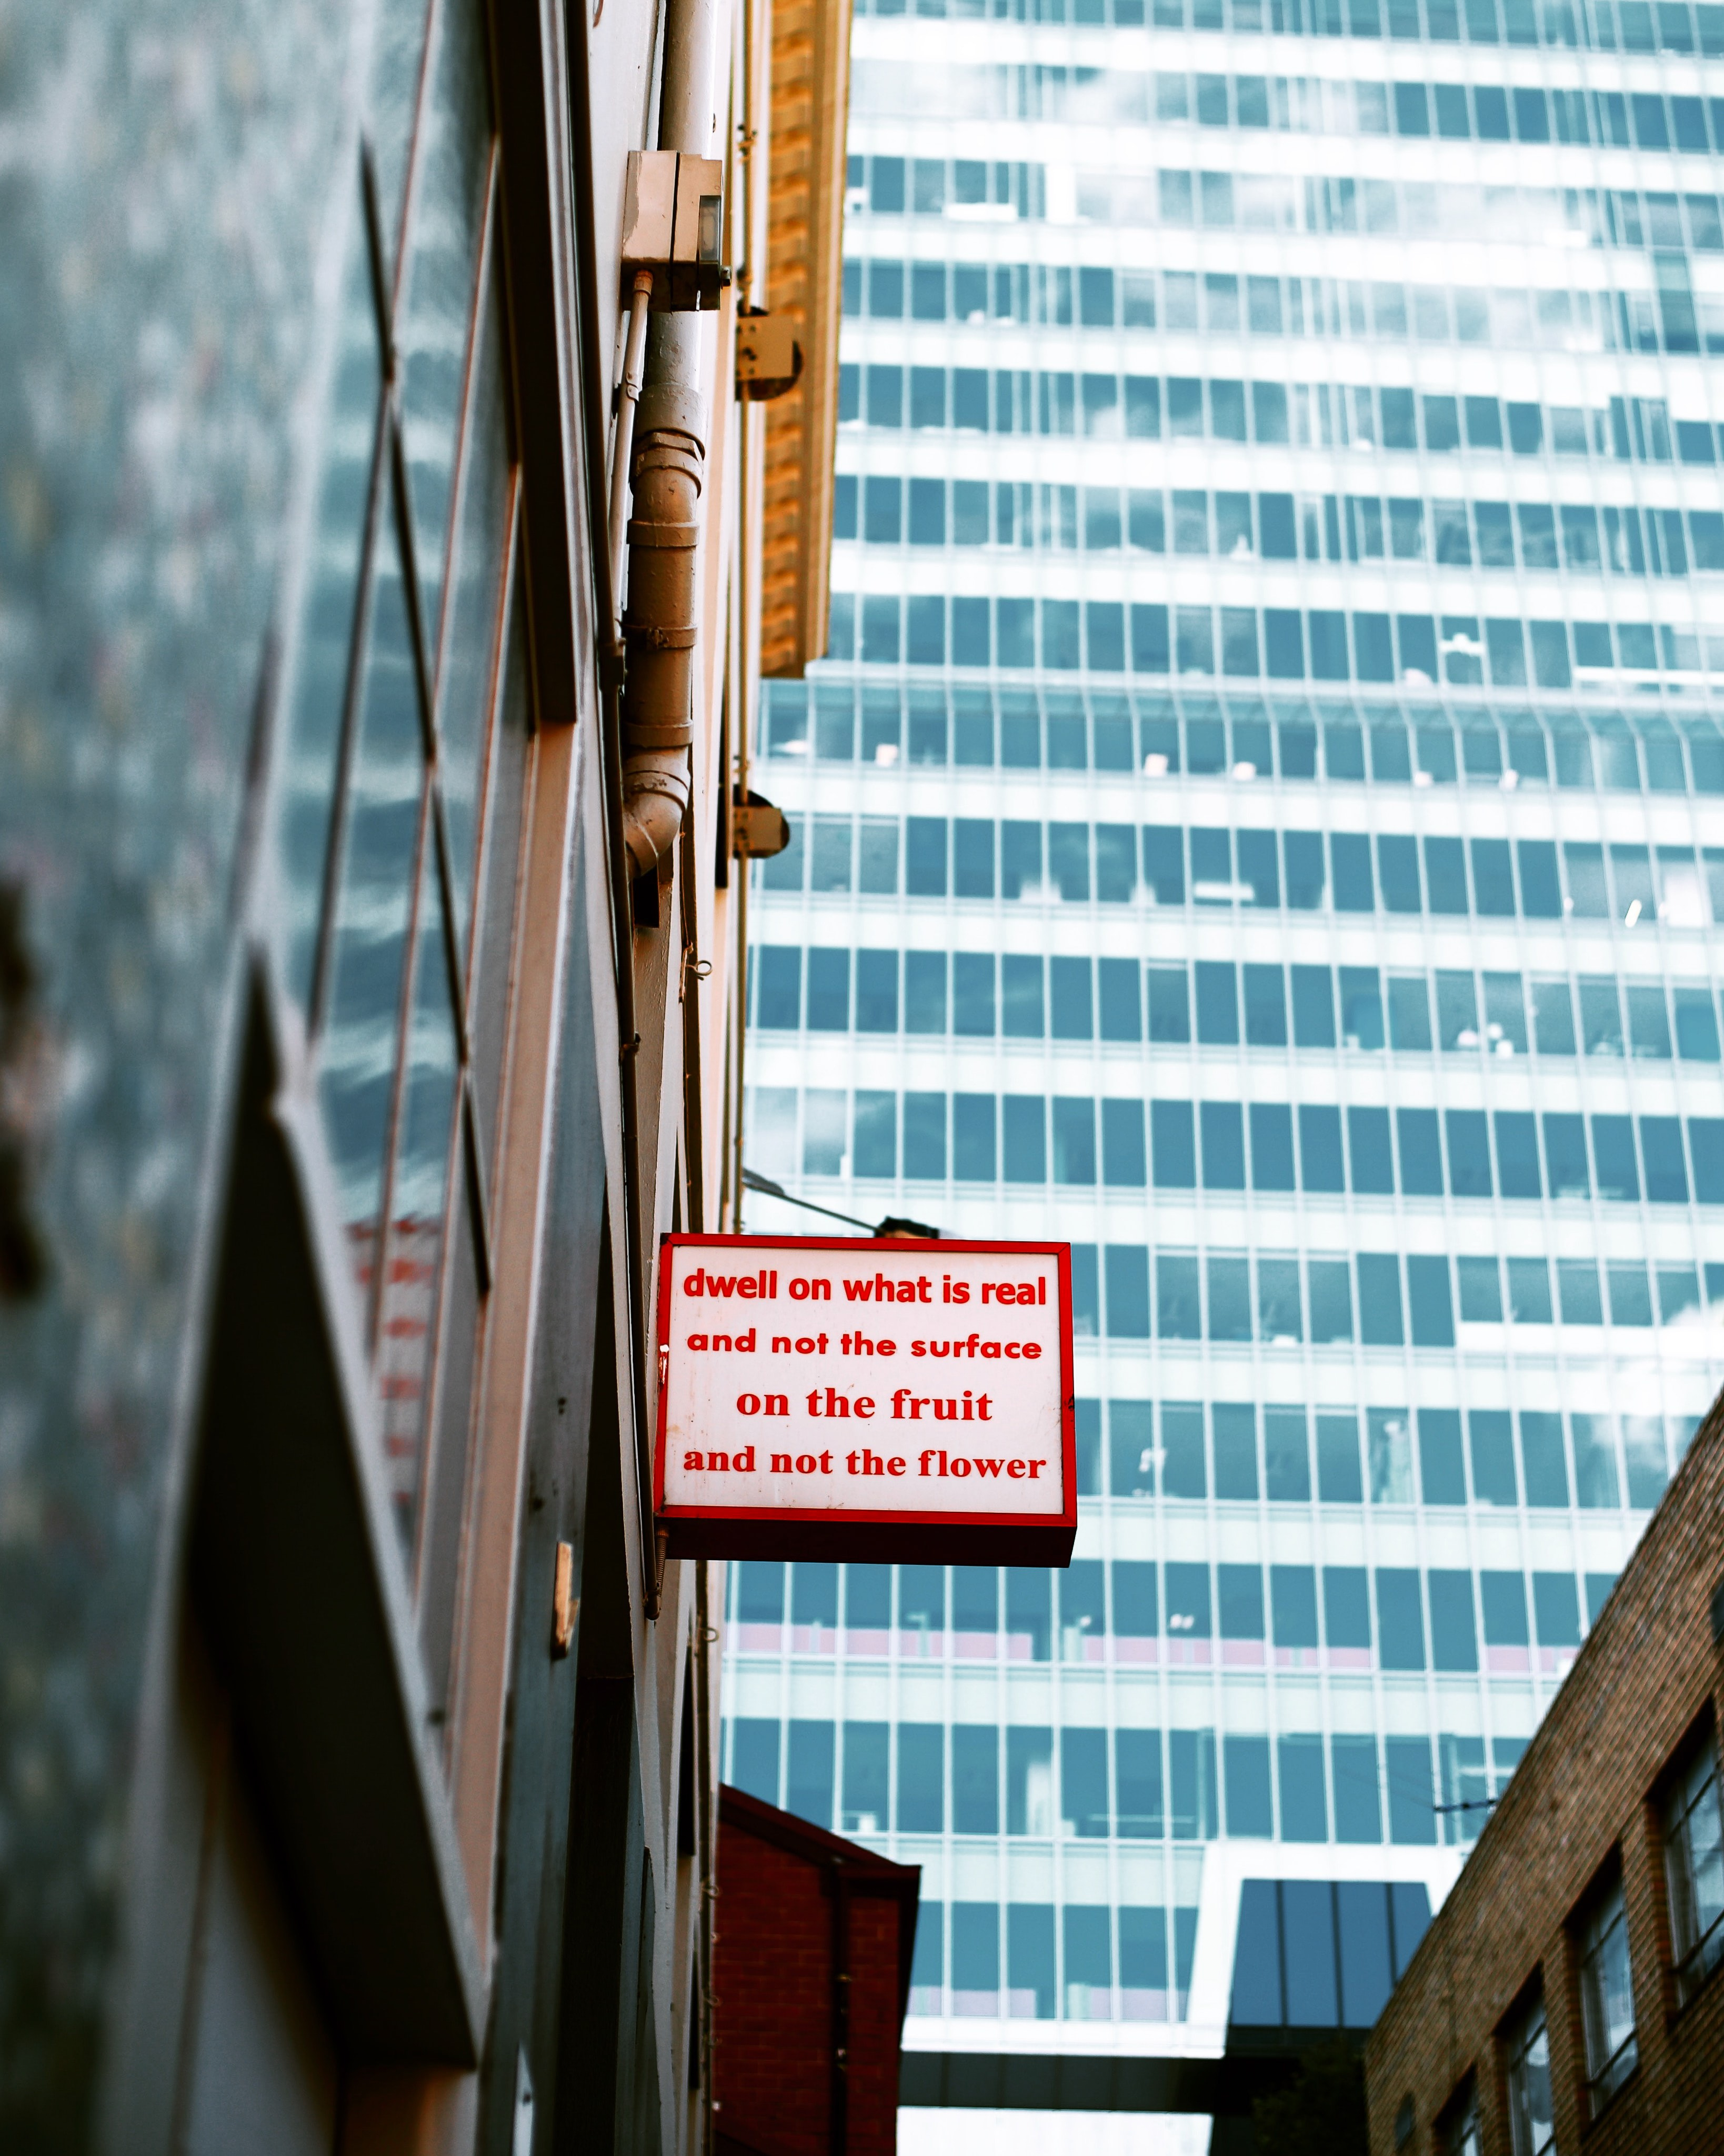 wihte and red sign board near mirror wall building